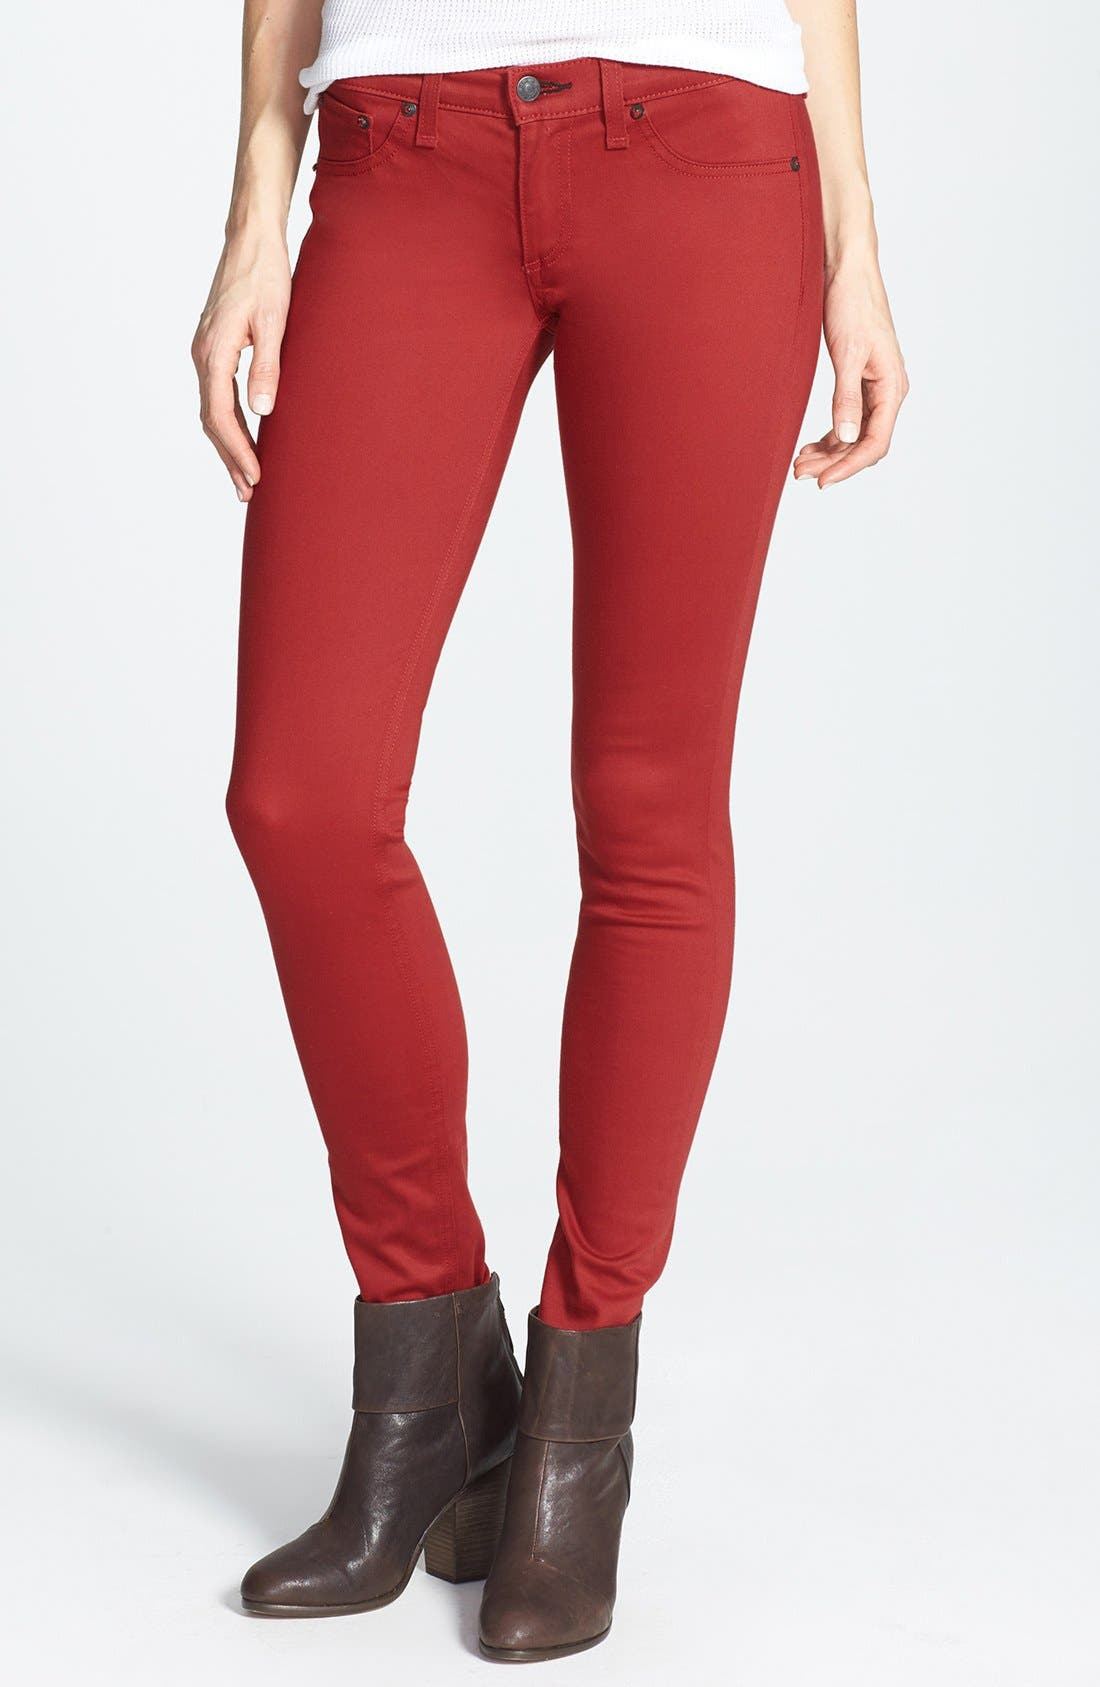 Alternate Image 1 Selected - rag & bone/JEAN 'The Legging' Sateen Skinny Jeans (Red Sateen)